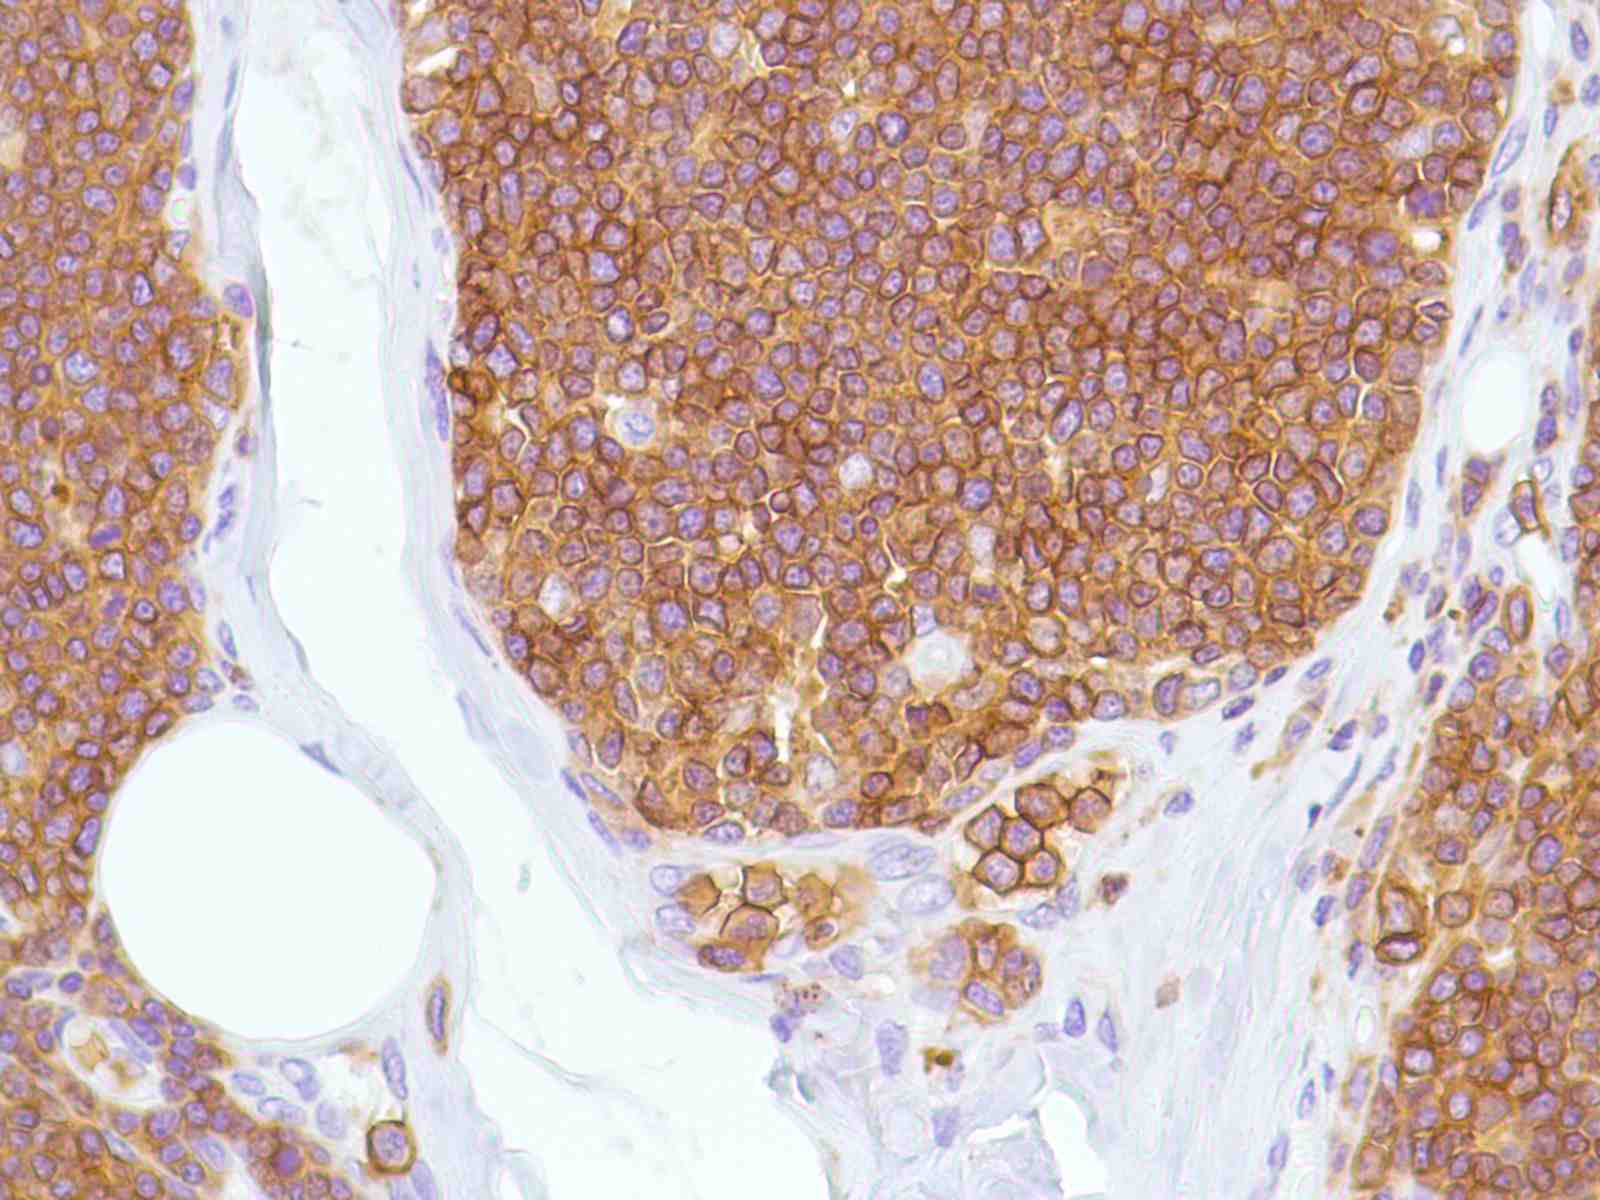 Human Thymus stained with anti-CD43 antibody